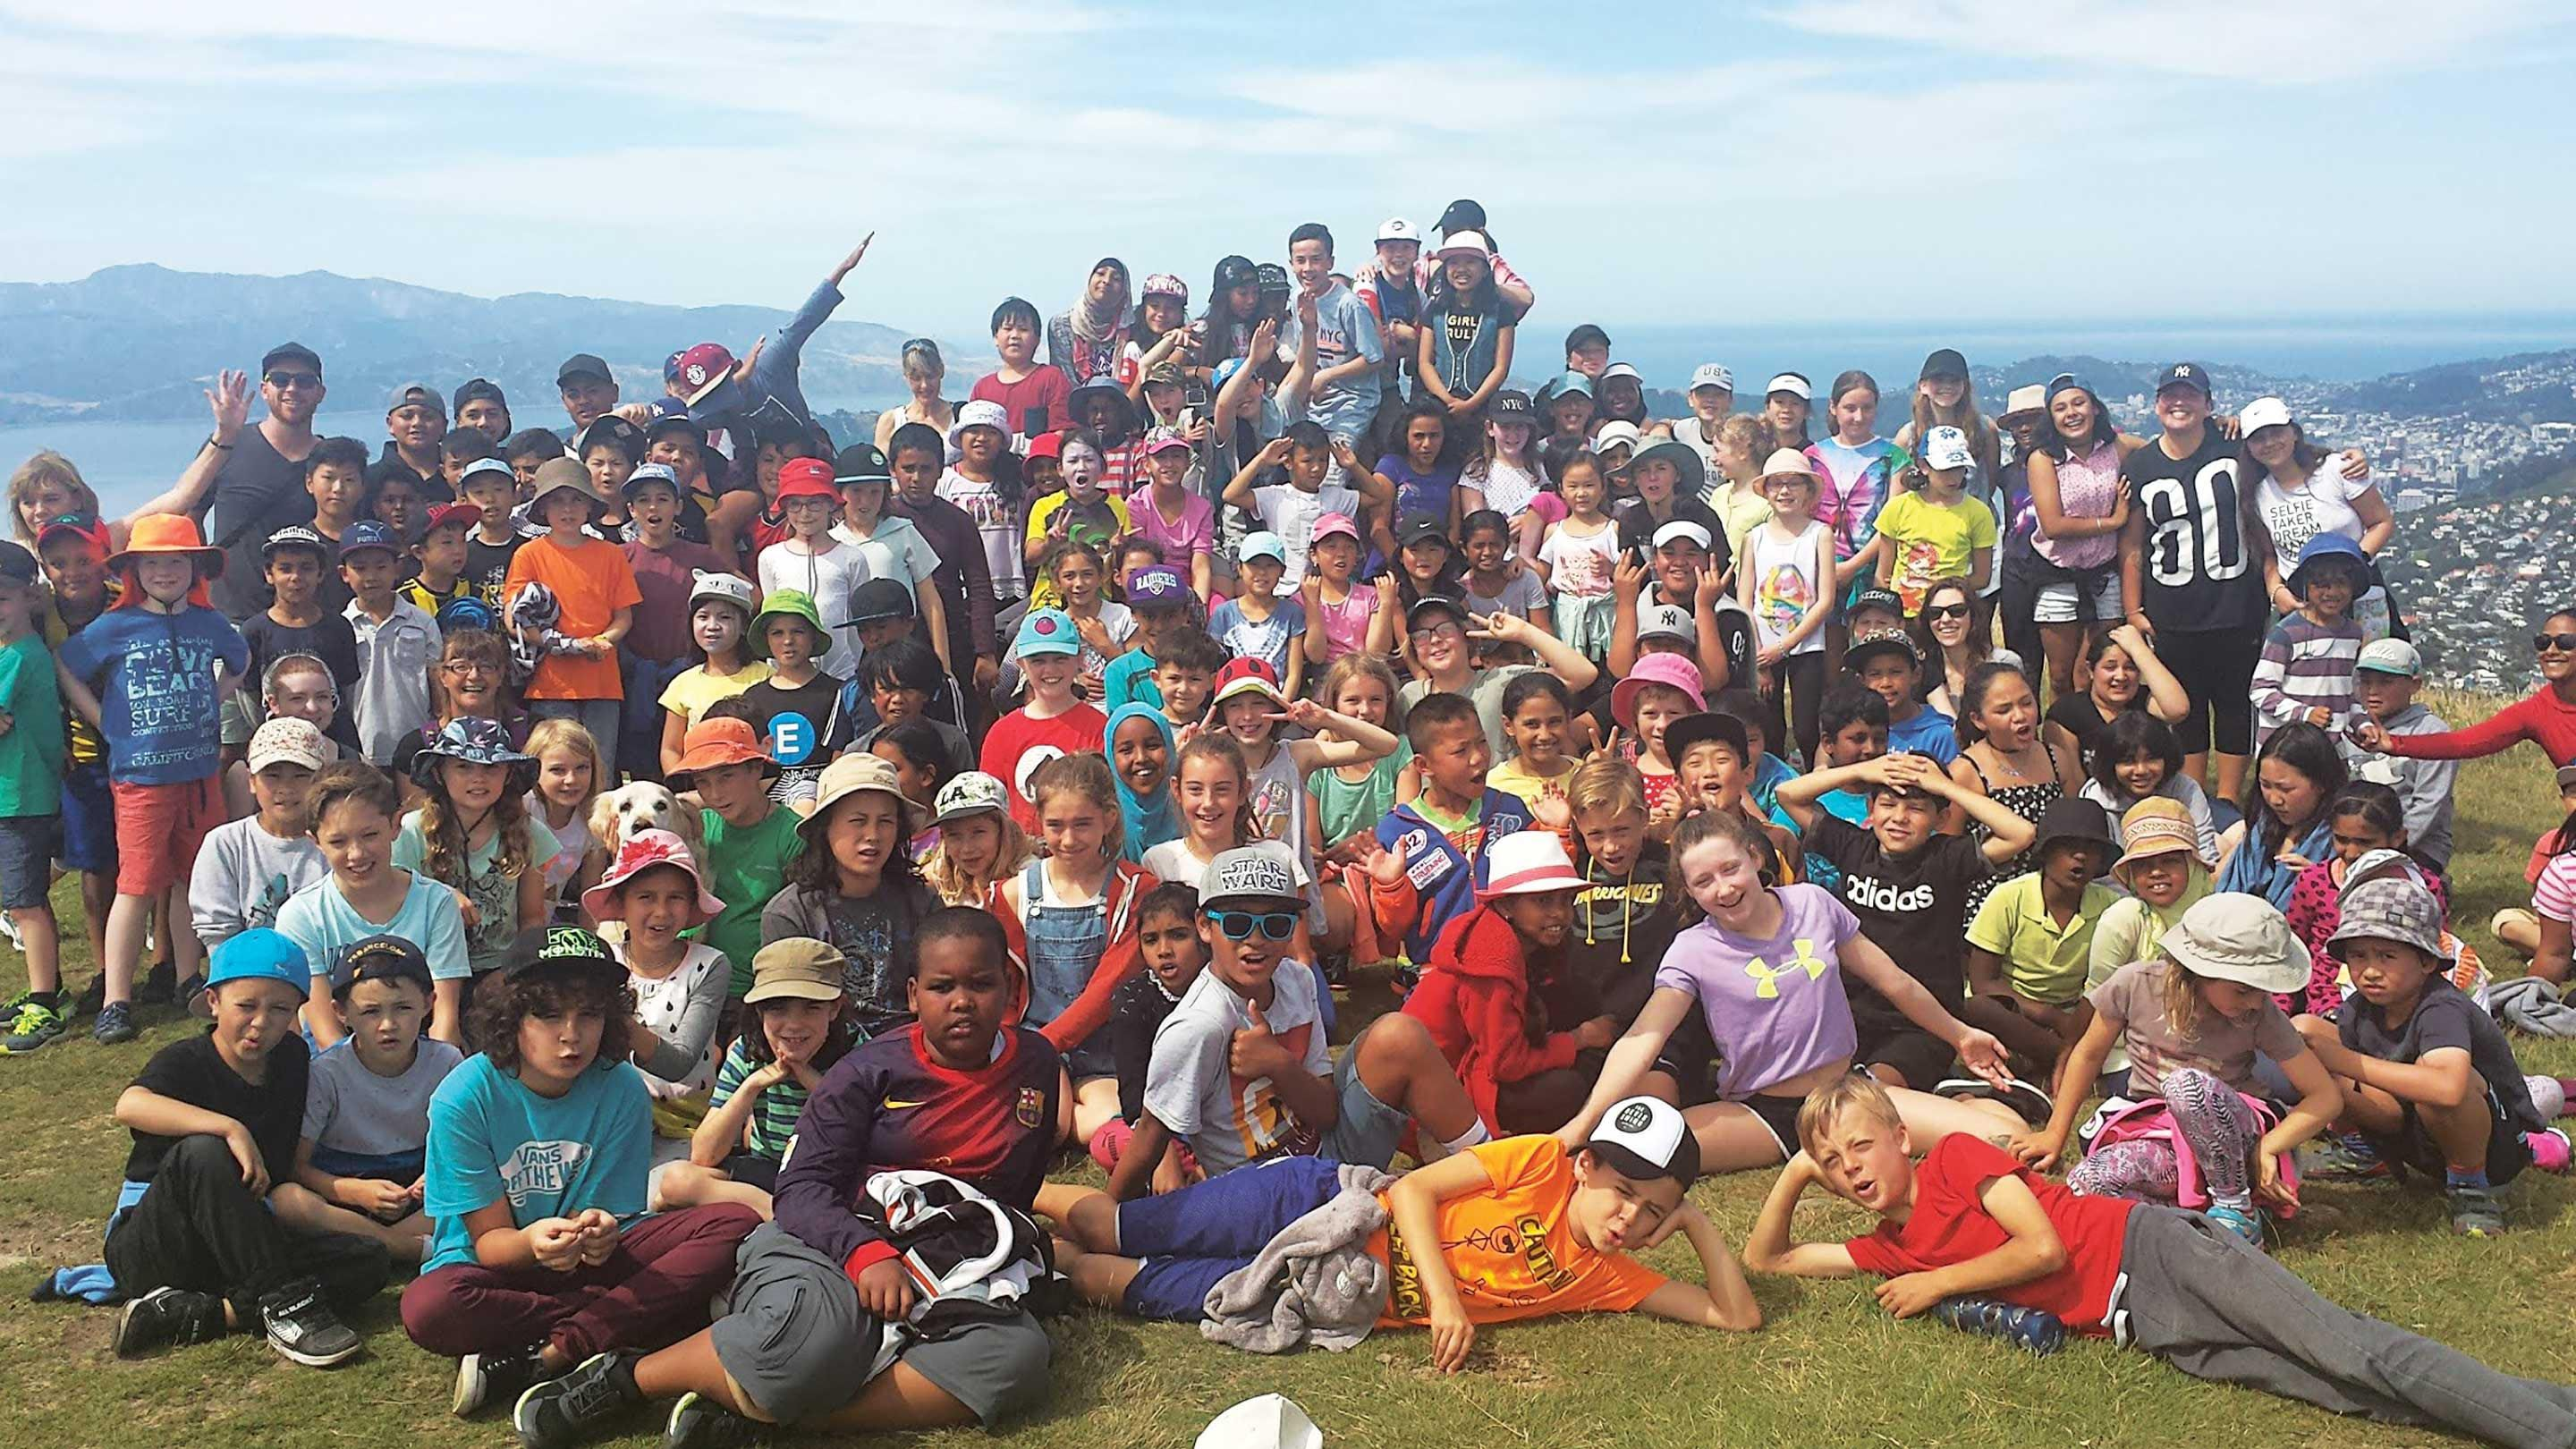 Photo provided by the author of a large group of students in New Zealand